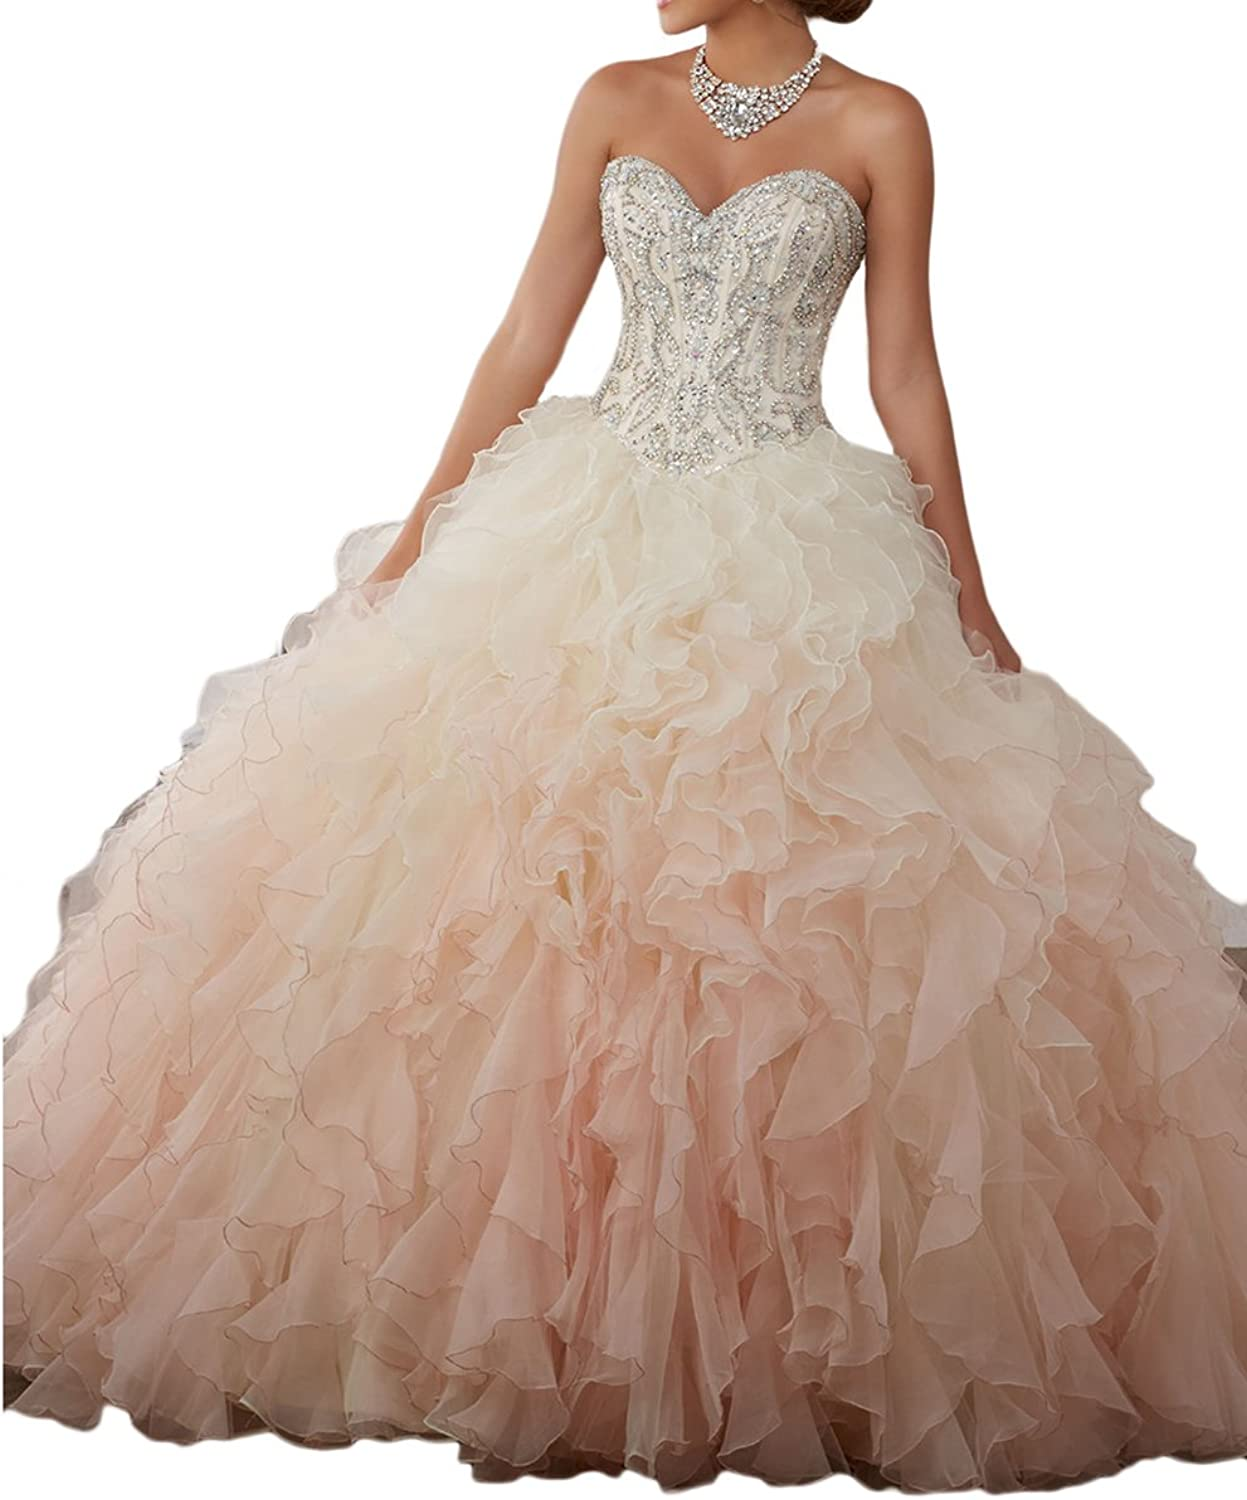 Beilite Women's Sweetheart Organza Quinceanera Dresses with Crystal Bead